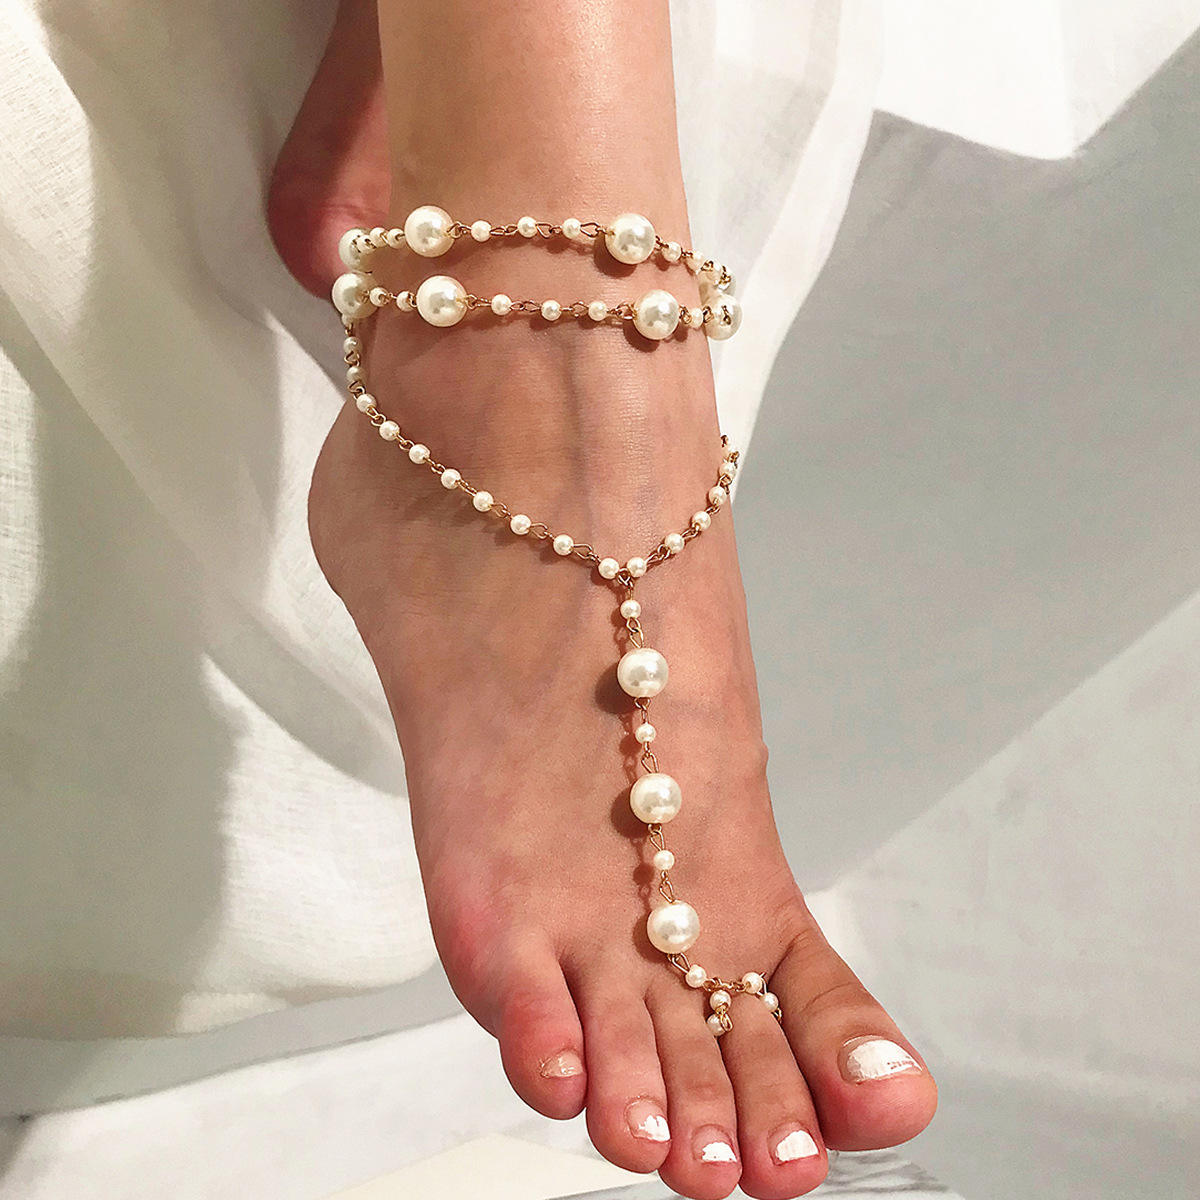 High Quality Elegant Pearl Beaded handmade crochet Women's Anklet Toe Ring Beach Nude Shoes Accessory